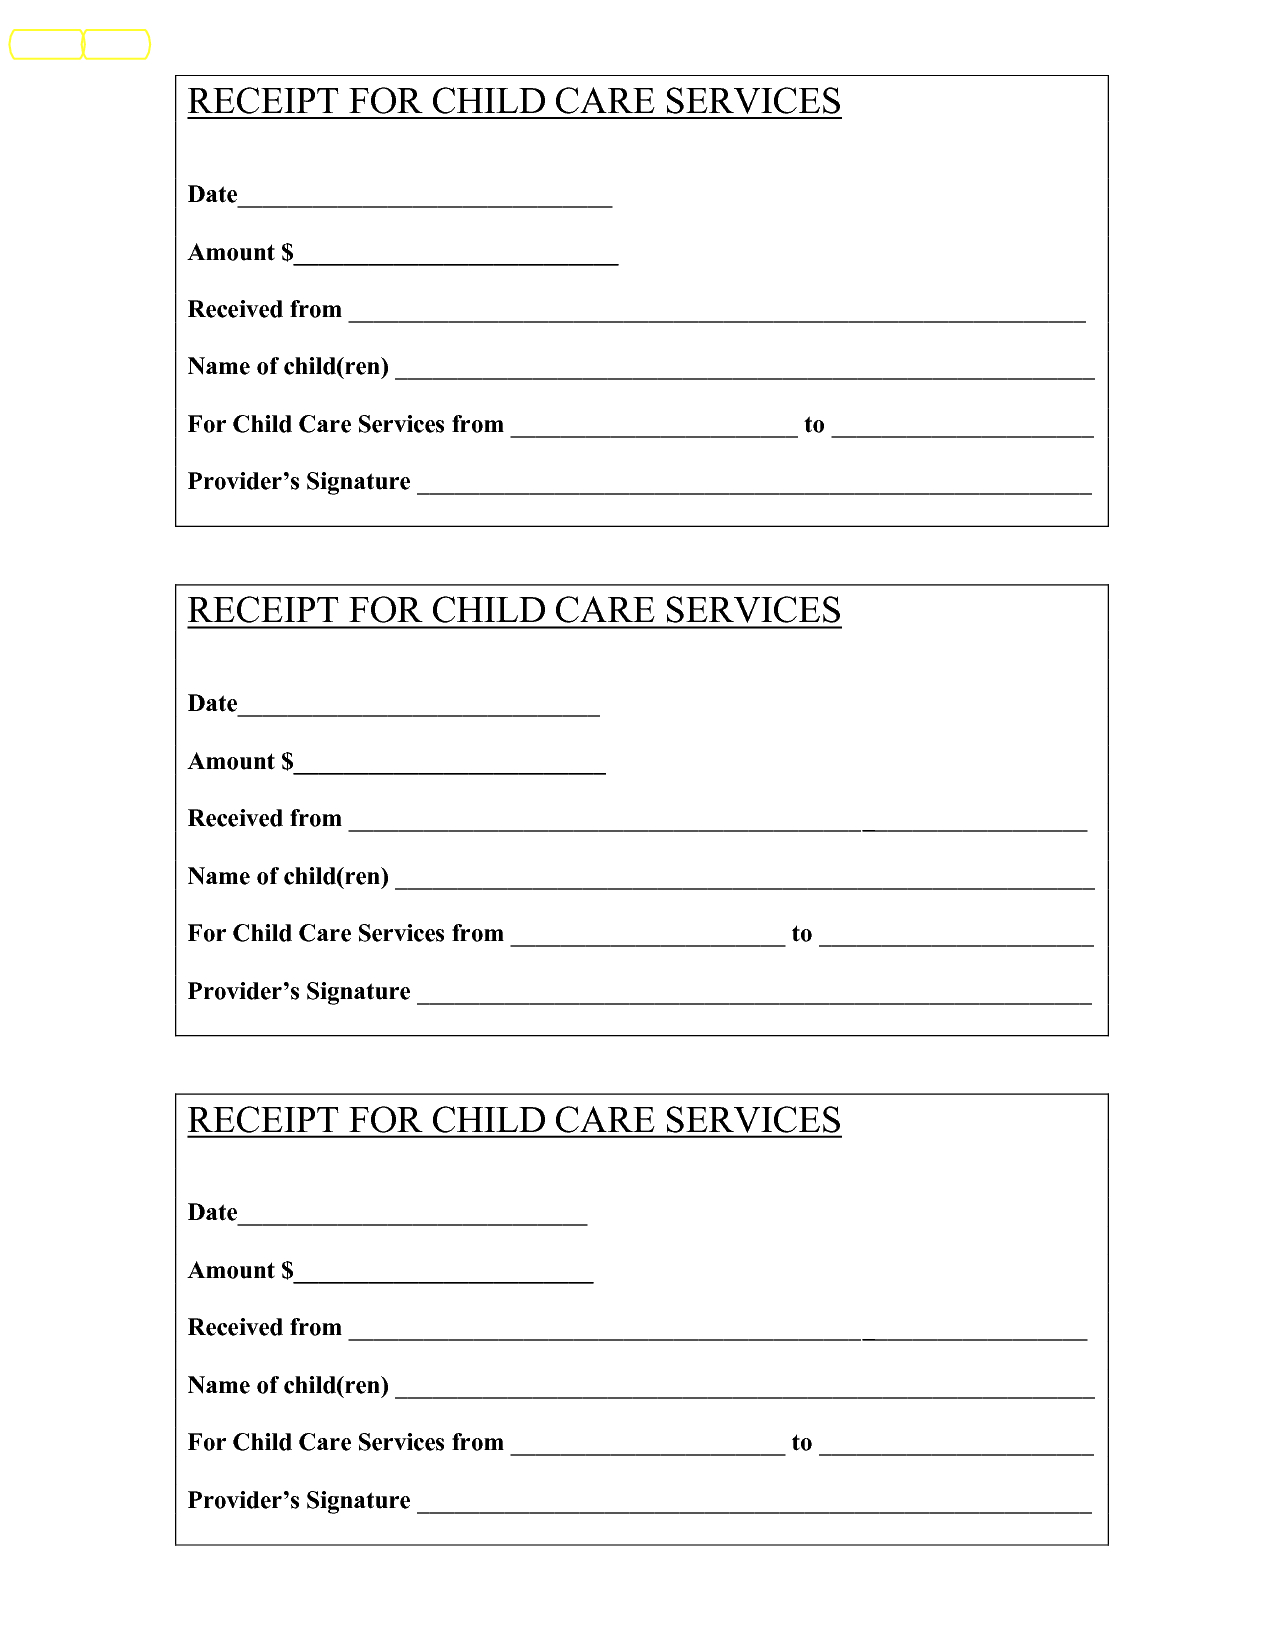 Babysitting Receipt - Bing Images | Baby | Child Care Services - Free Printable Daycare Receipts